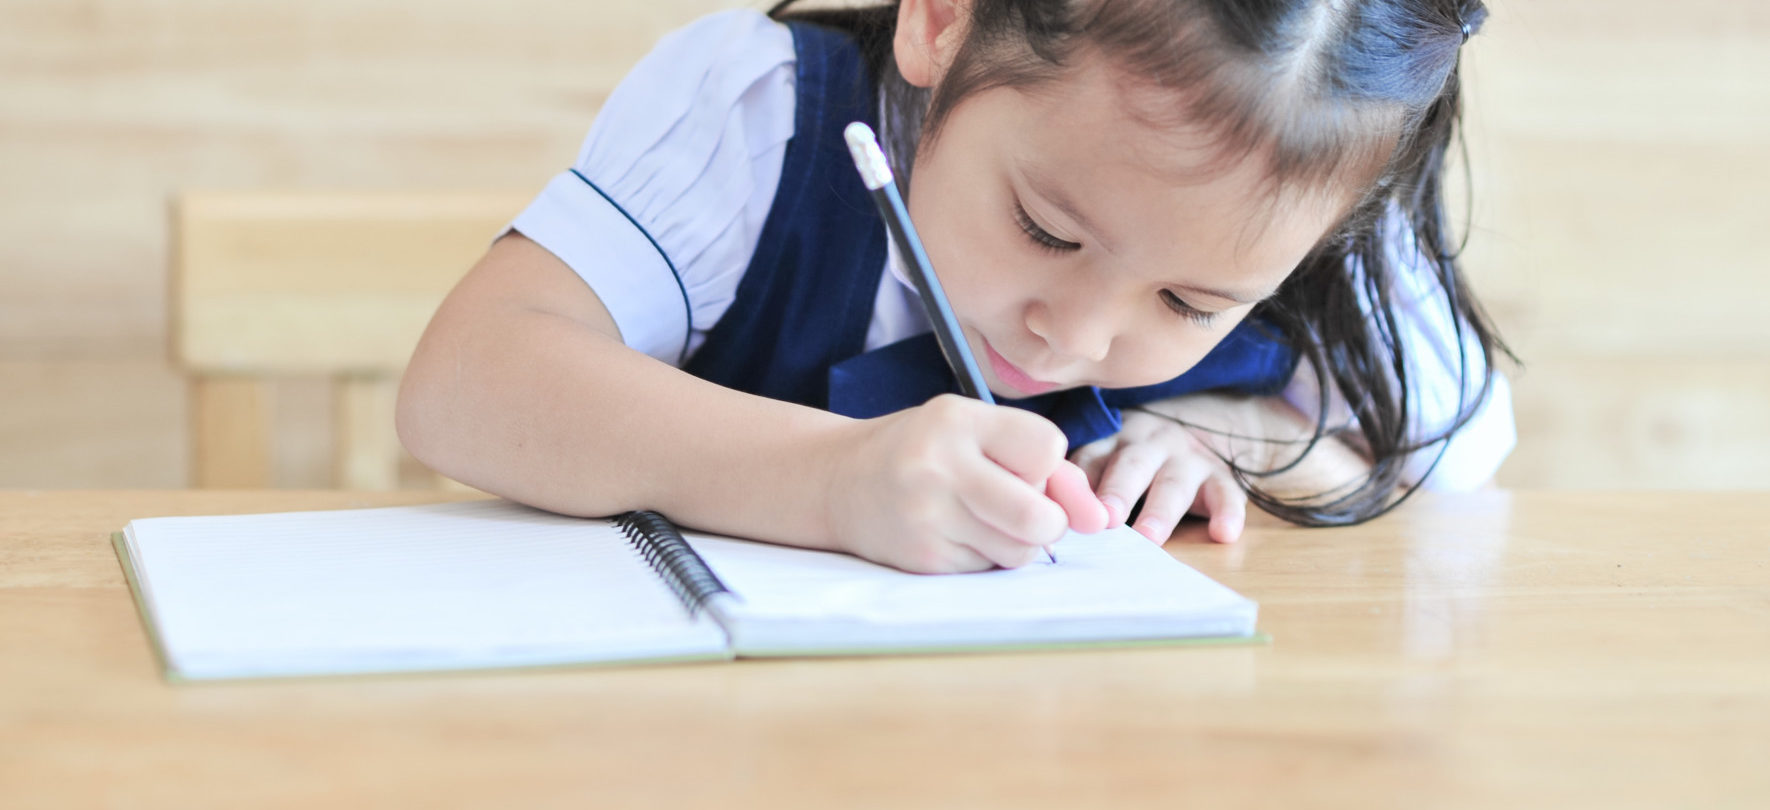 How to Engage Your Kids in Writing